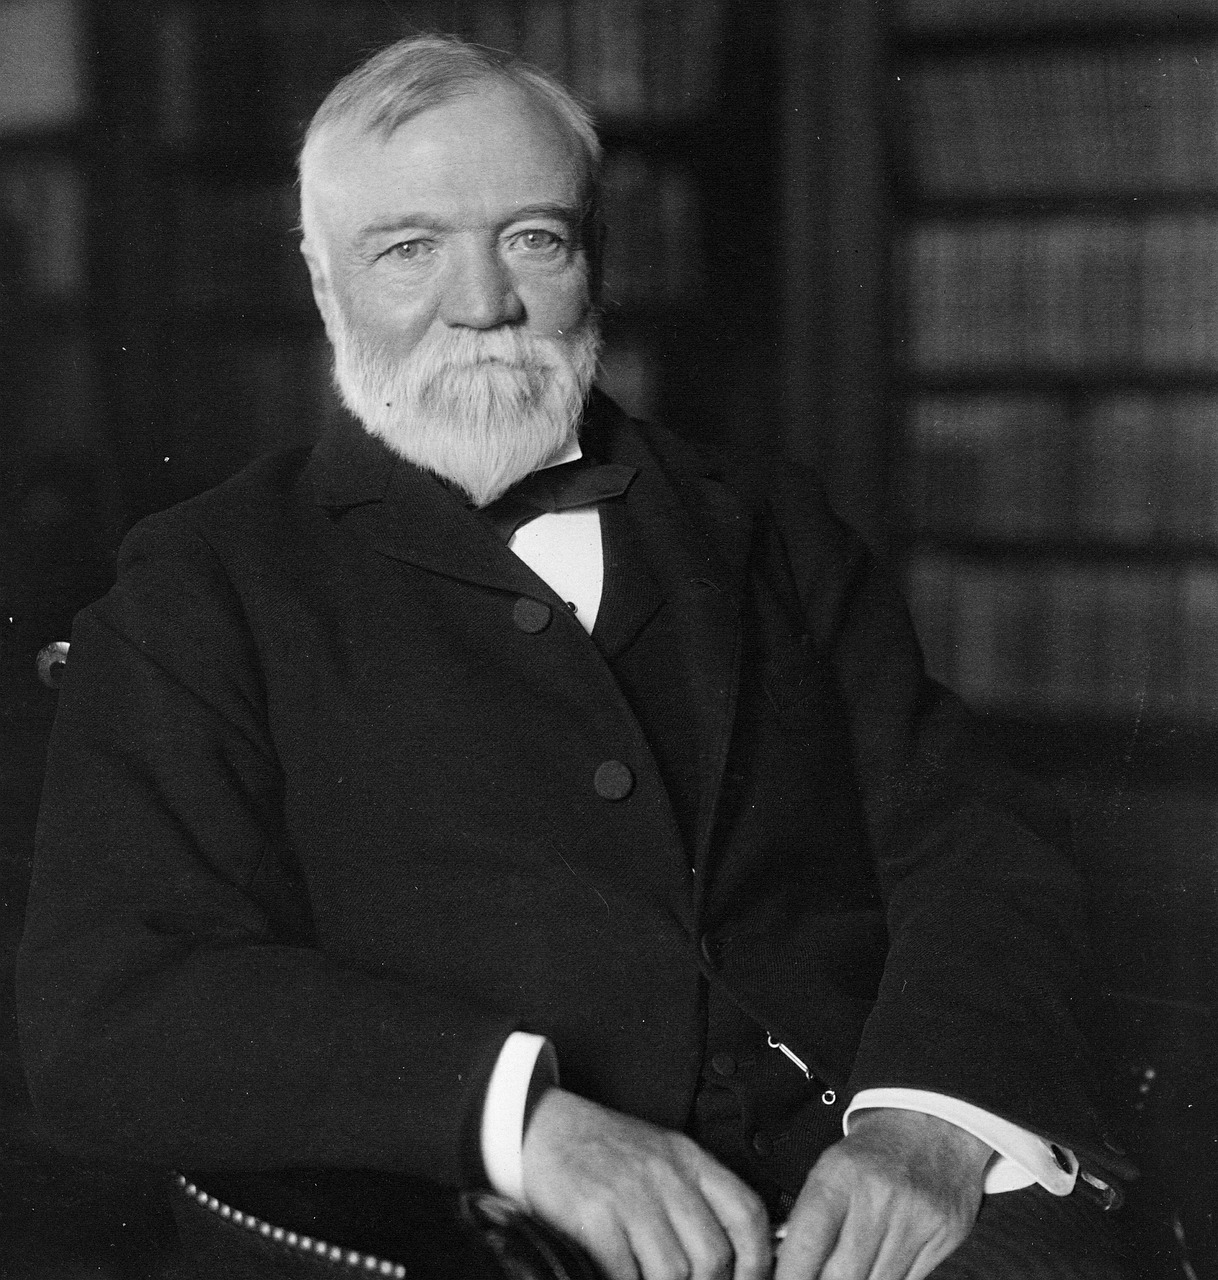 A Look at Andrew Carnegie, Industrialist and Philanthropist